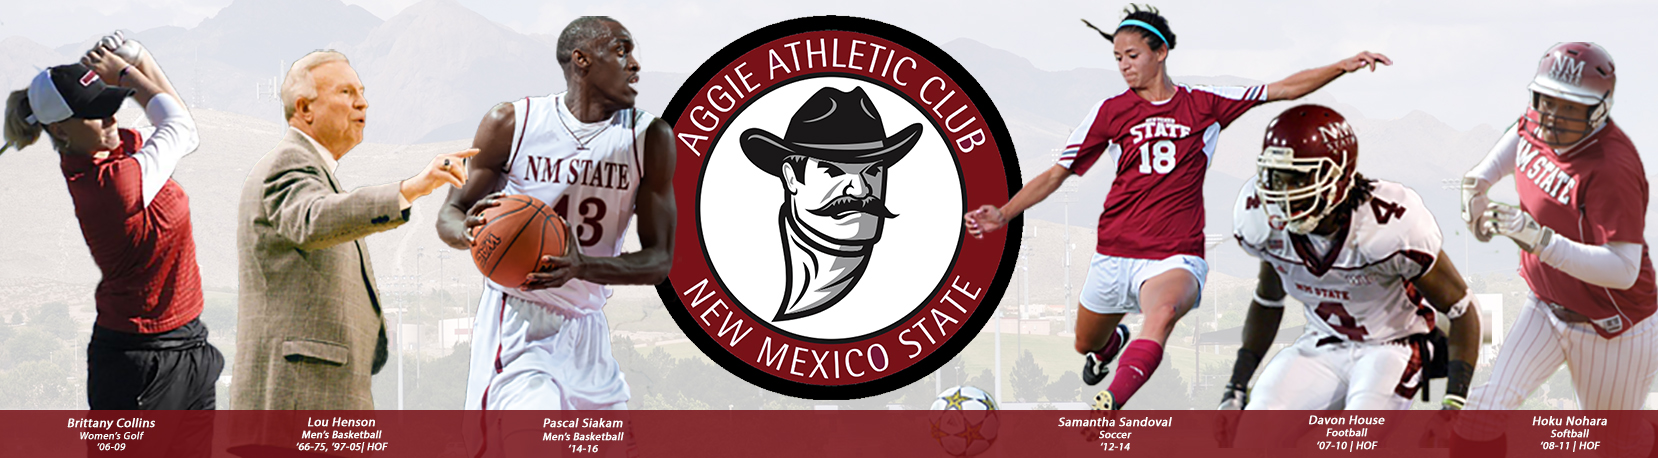 Please make your contribution to the Aggie Athletic Club at New Mexico State University